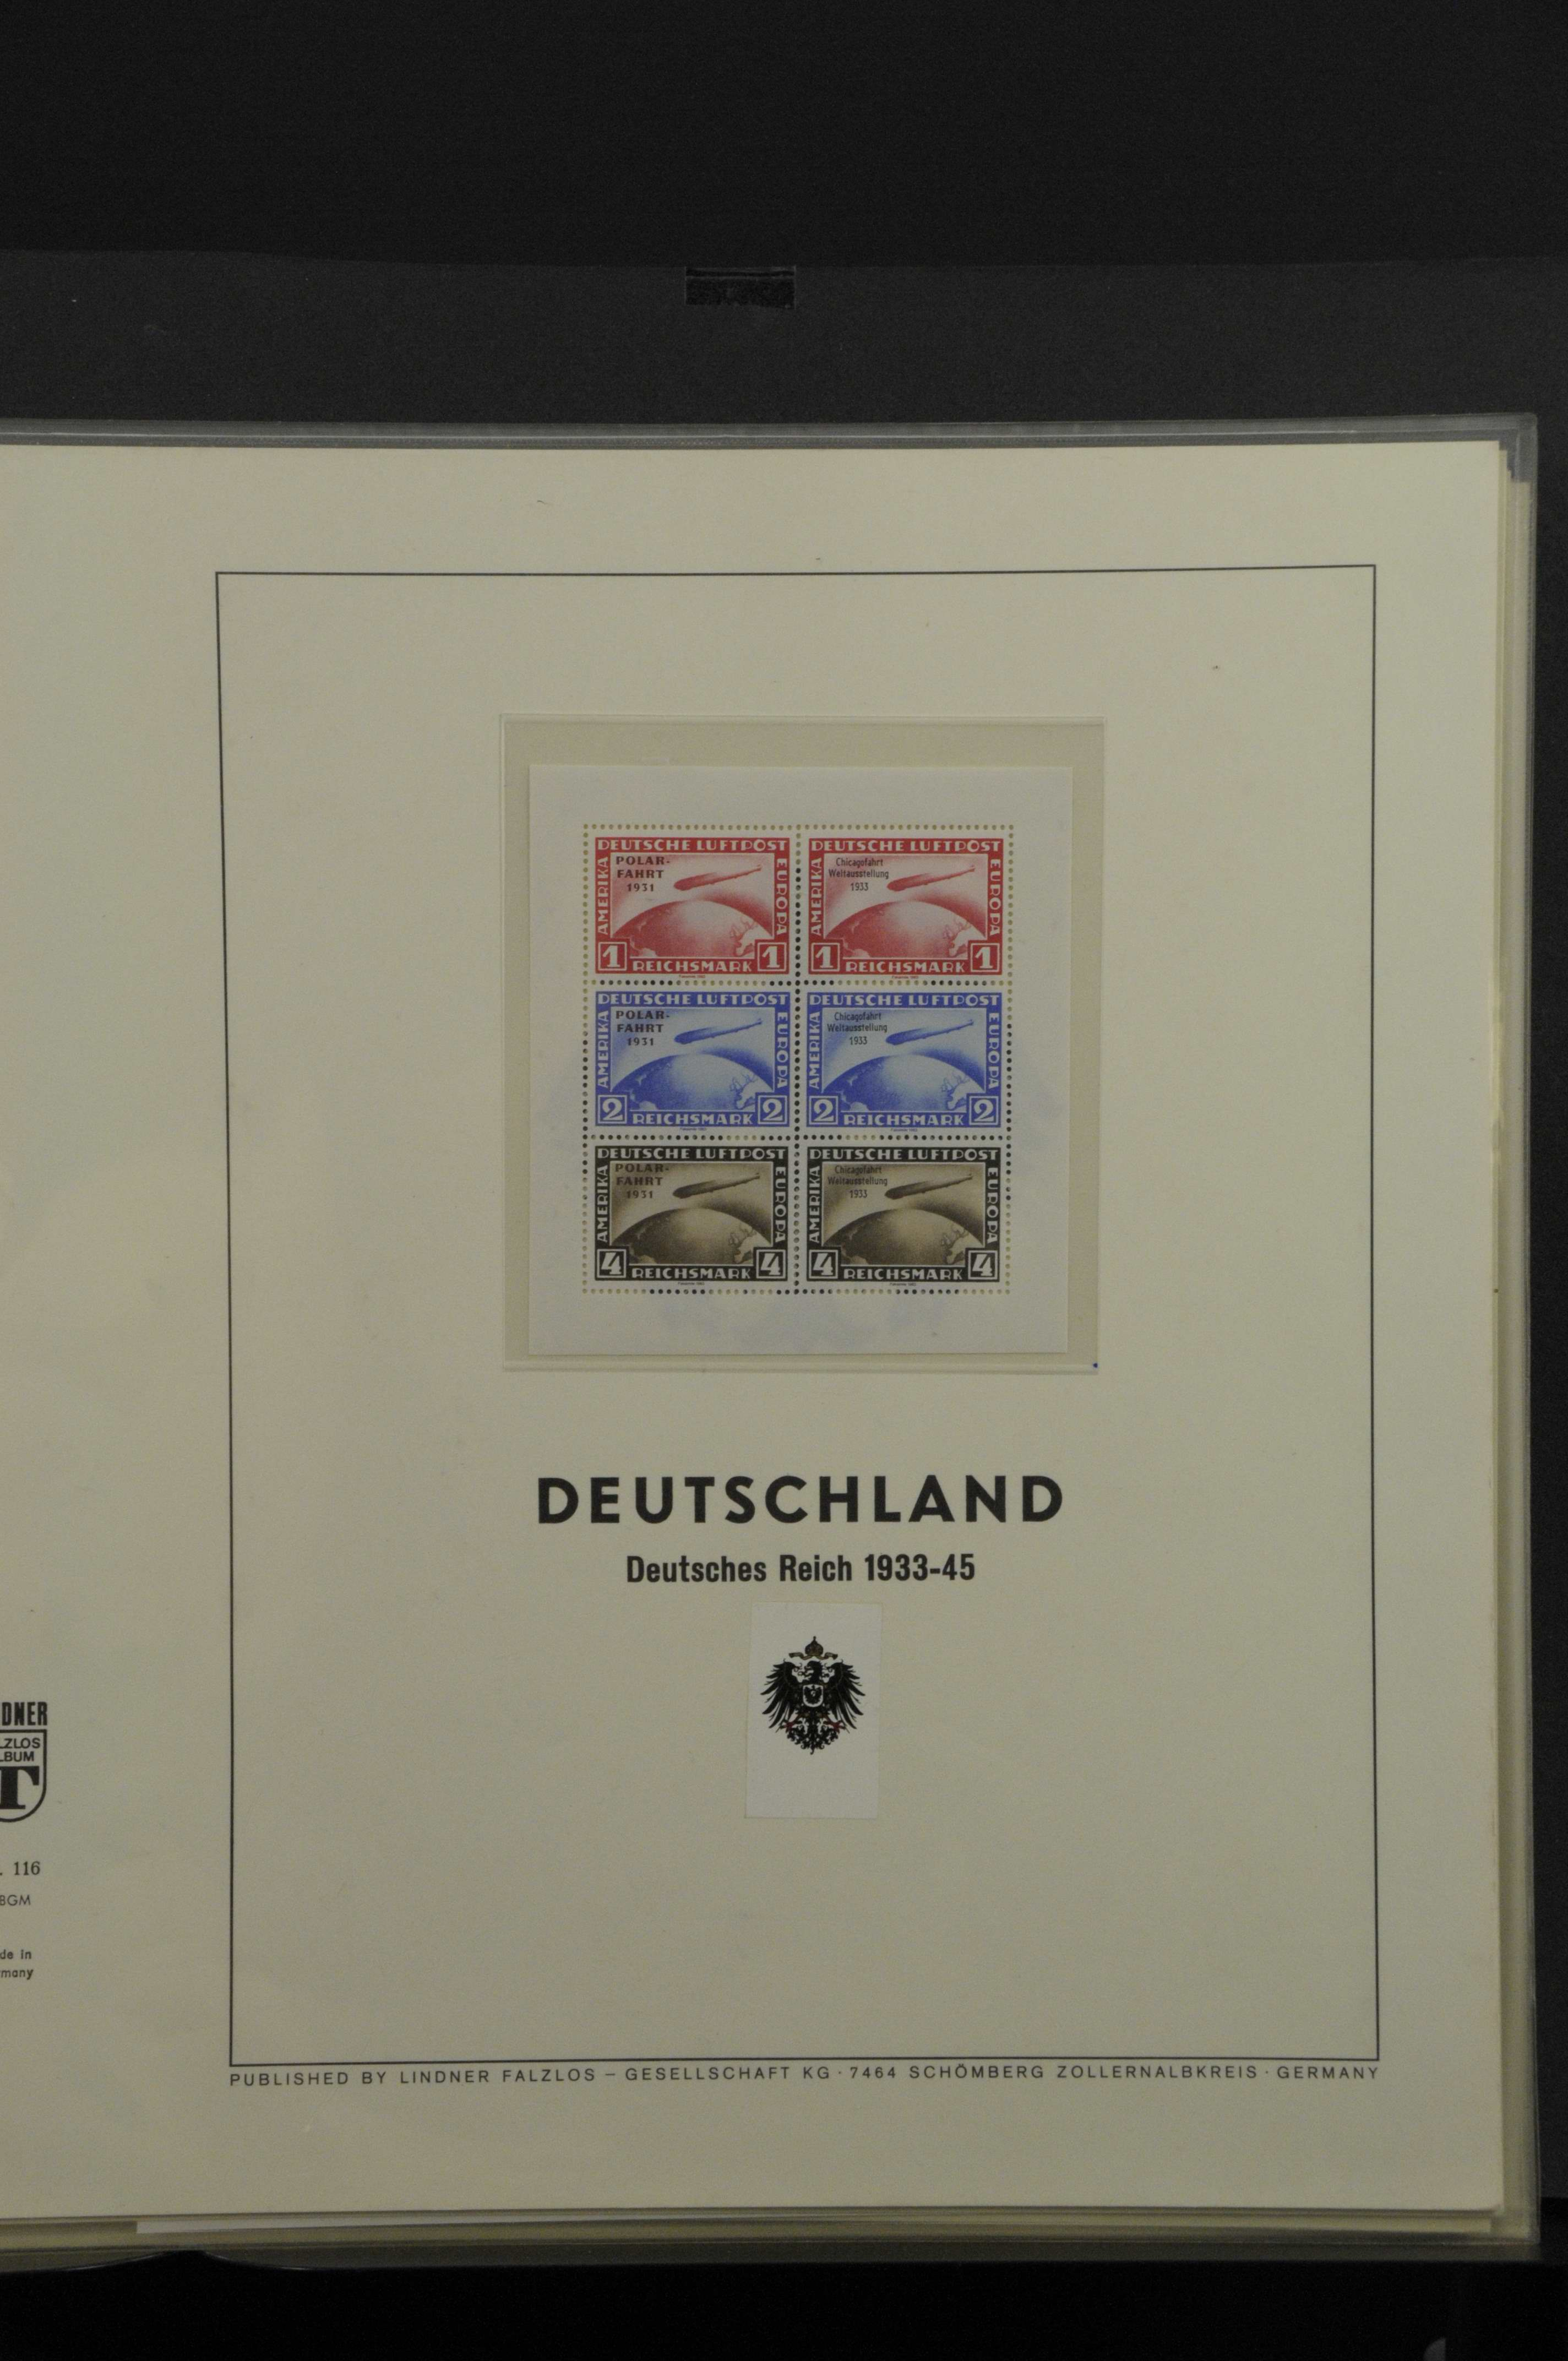 Lot 7935 - Deutsches Reich drittes reich -  Auktionshaus Ulrich Felzmann GmbH & Co. KG Auction 165   Philately, Airmail, Zeppelinmail and Astrophilately, international,  German and collections.